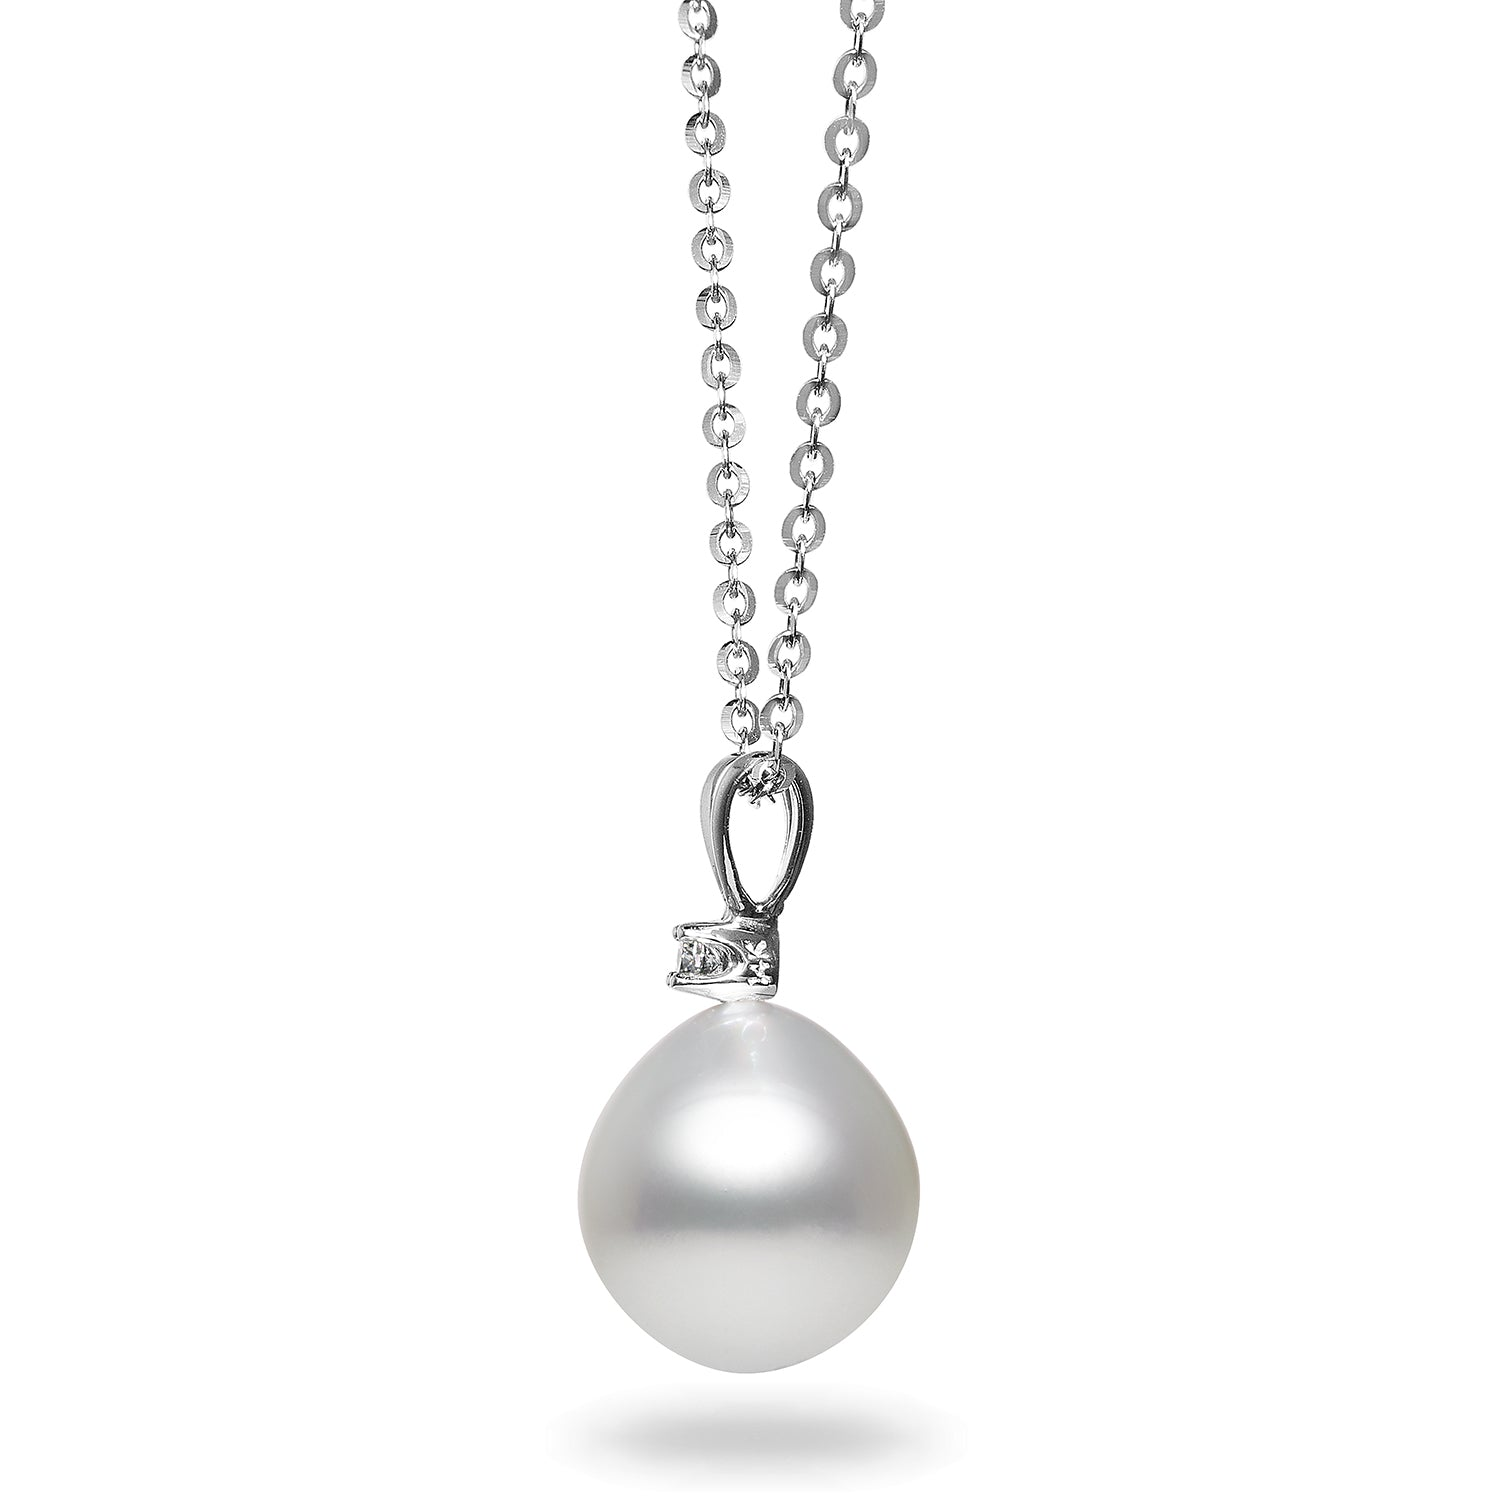 10-11mm White South Sea Pearl and Diamond Pendant